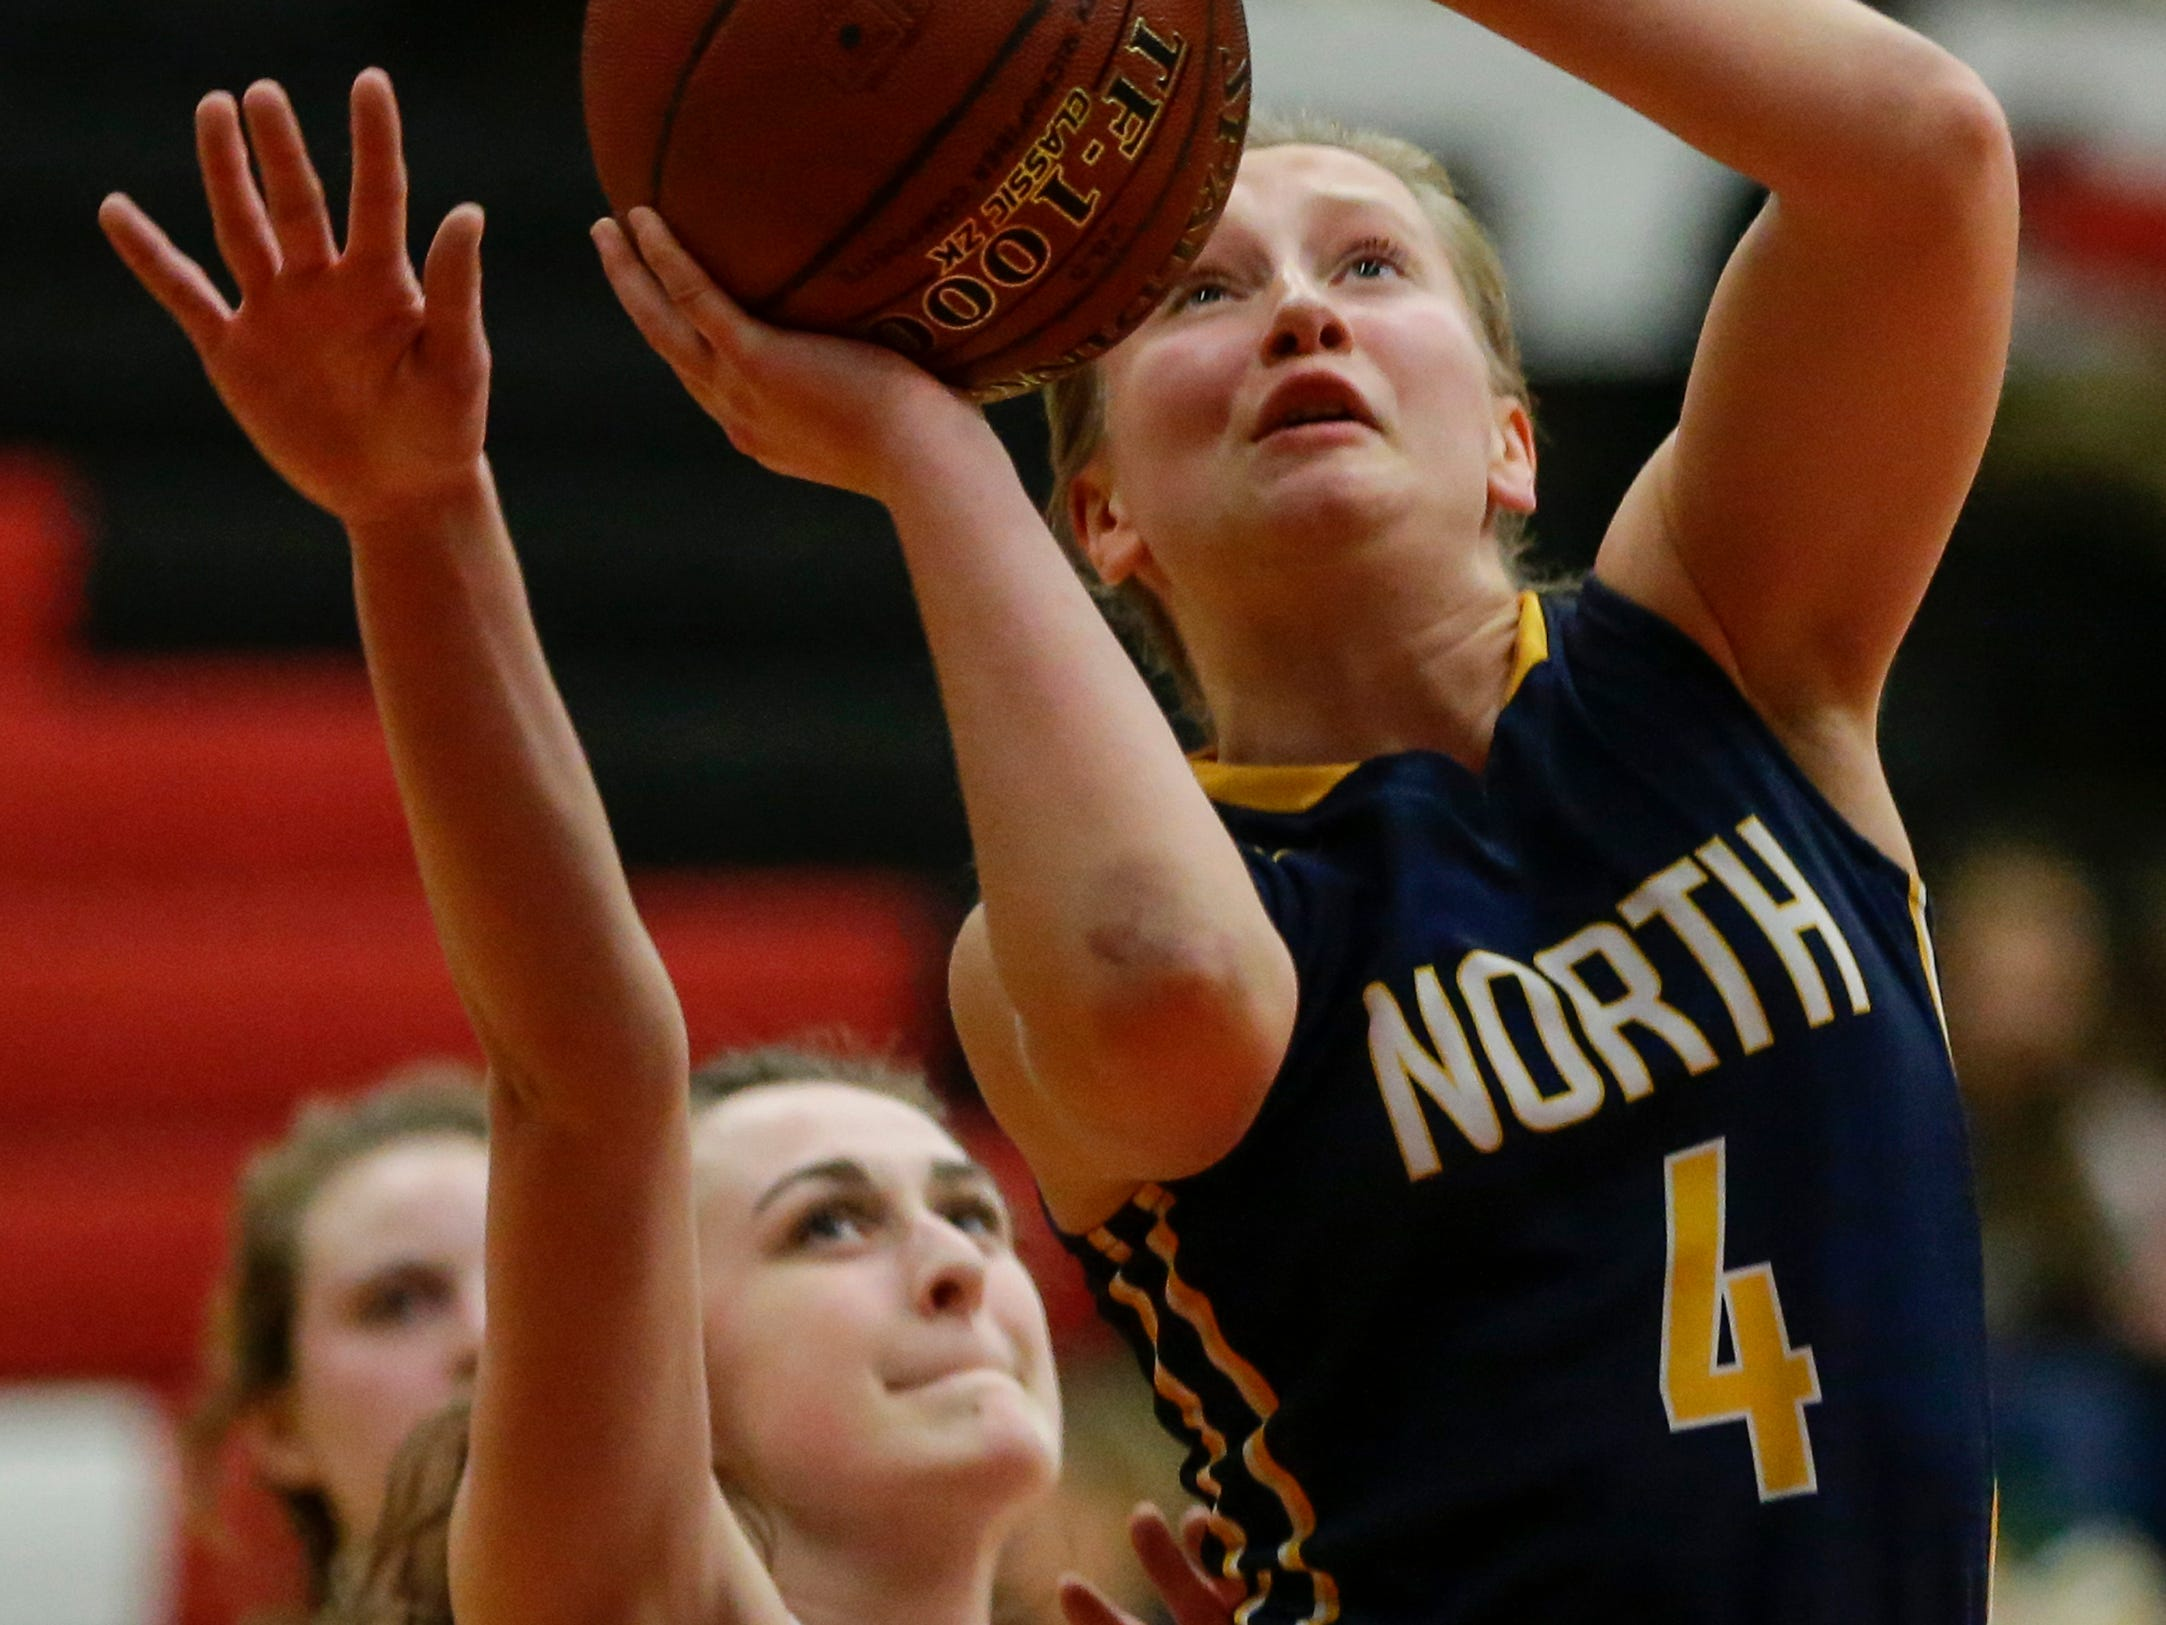 Sheboygan North's Julia Scharinger puts up a shot against Manitowoc Lincoln during a Fox River Classic Conference game at Manitowoc Lincoln High School Friday, December 14, 2018, in Manitowoc, Wis. Joshua Clark/USA TODAY NETWORK-Wisconsin